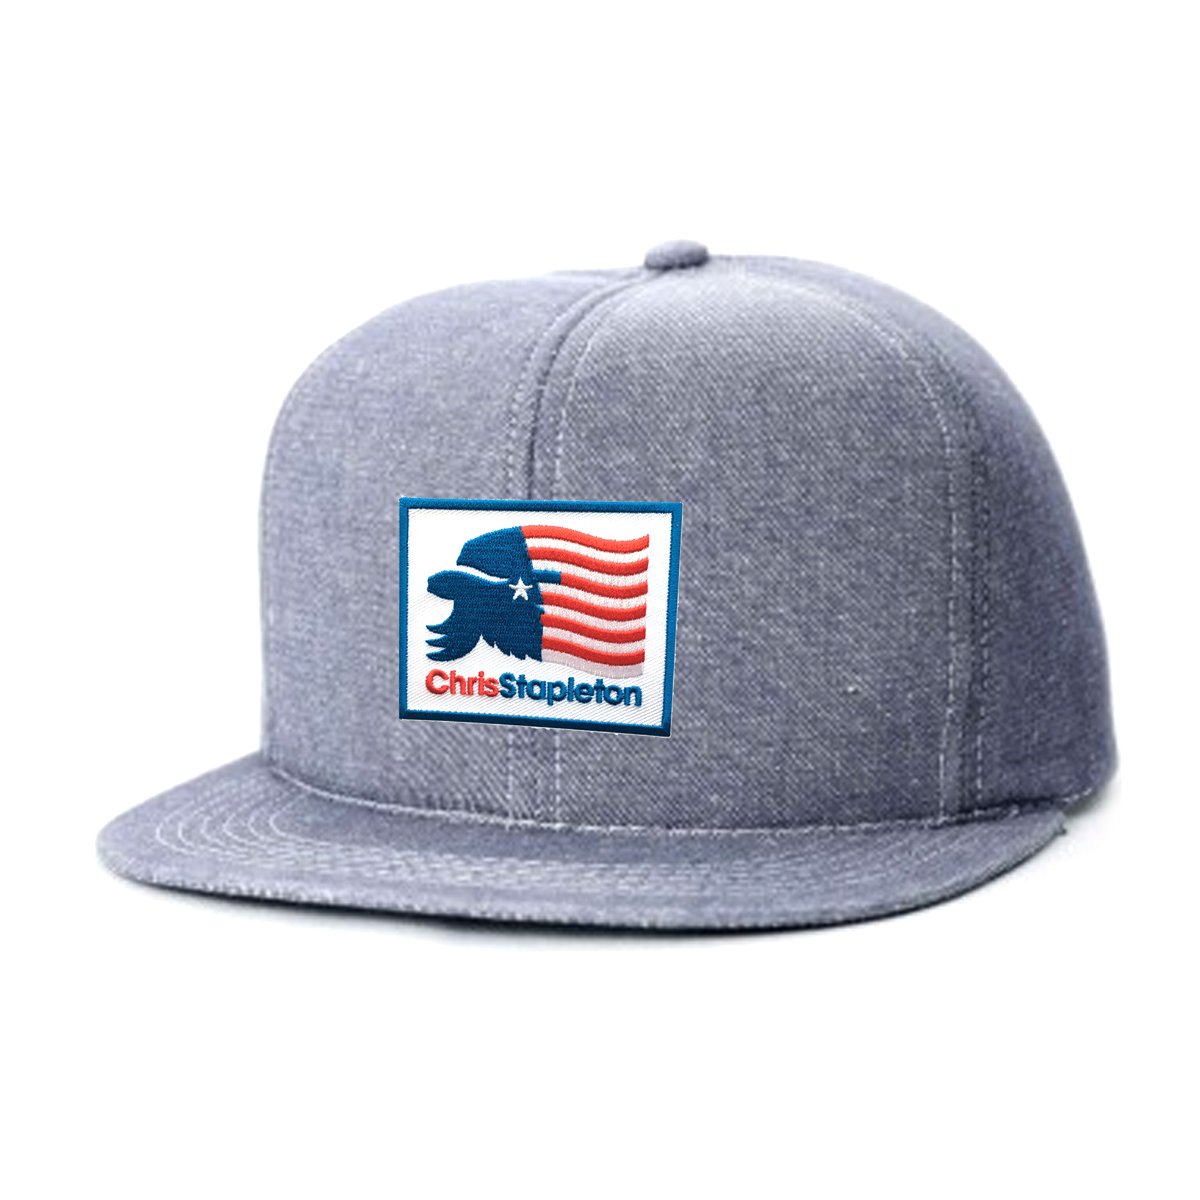 Chris Stapleton Foam Denim Hat